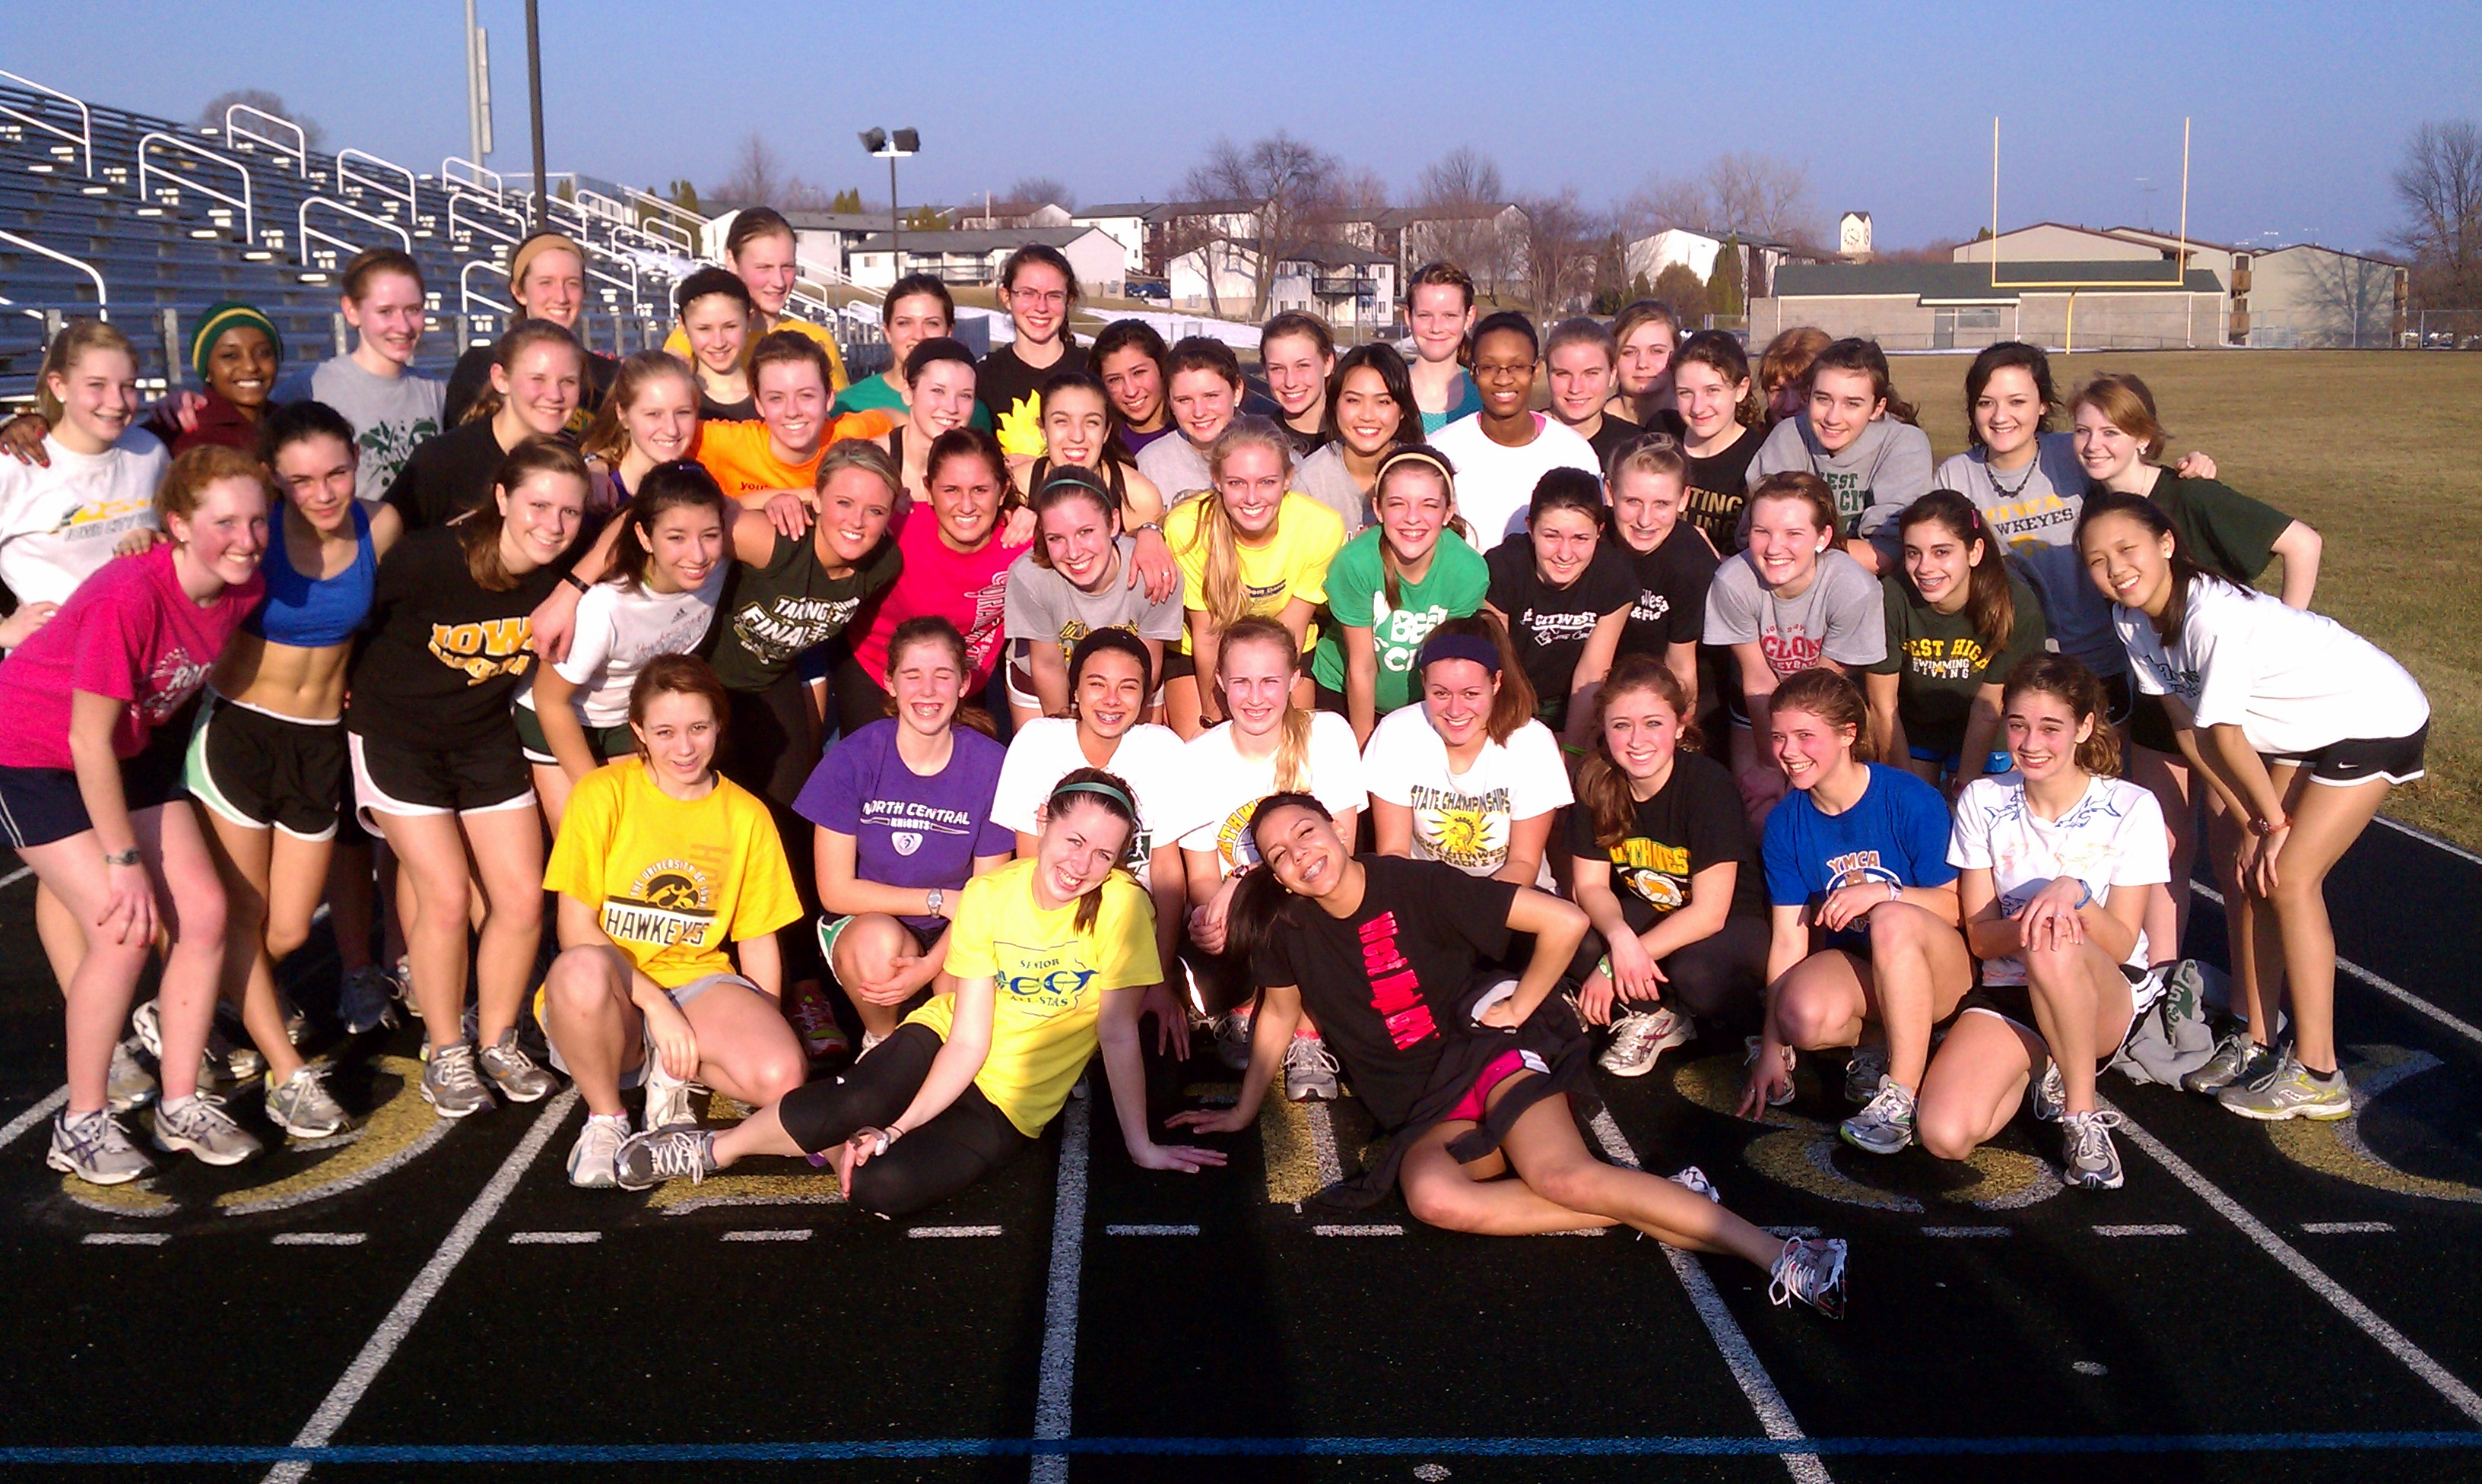 2011trackpracticegroup.jpg